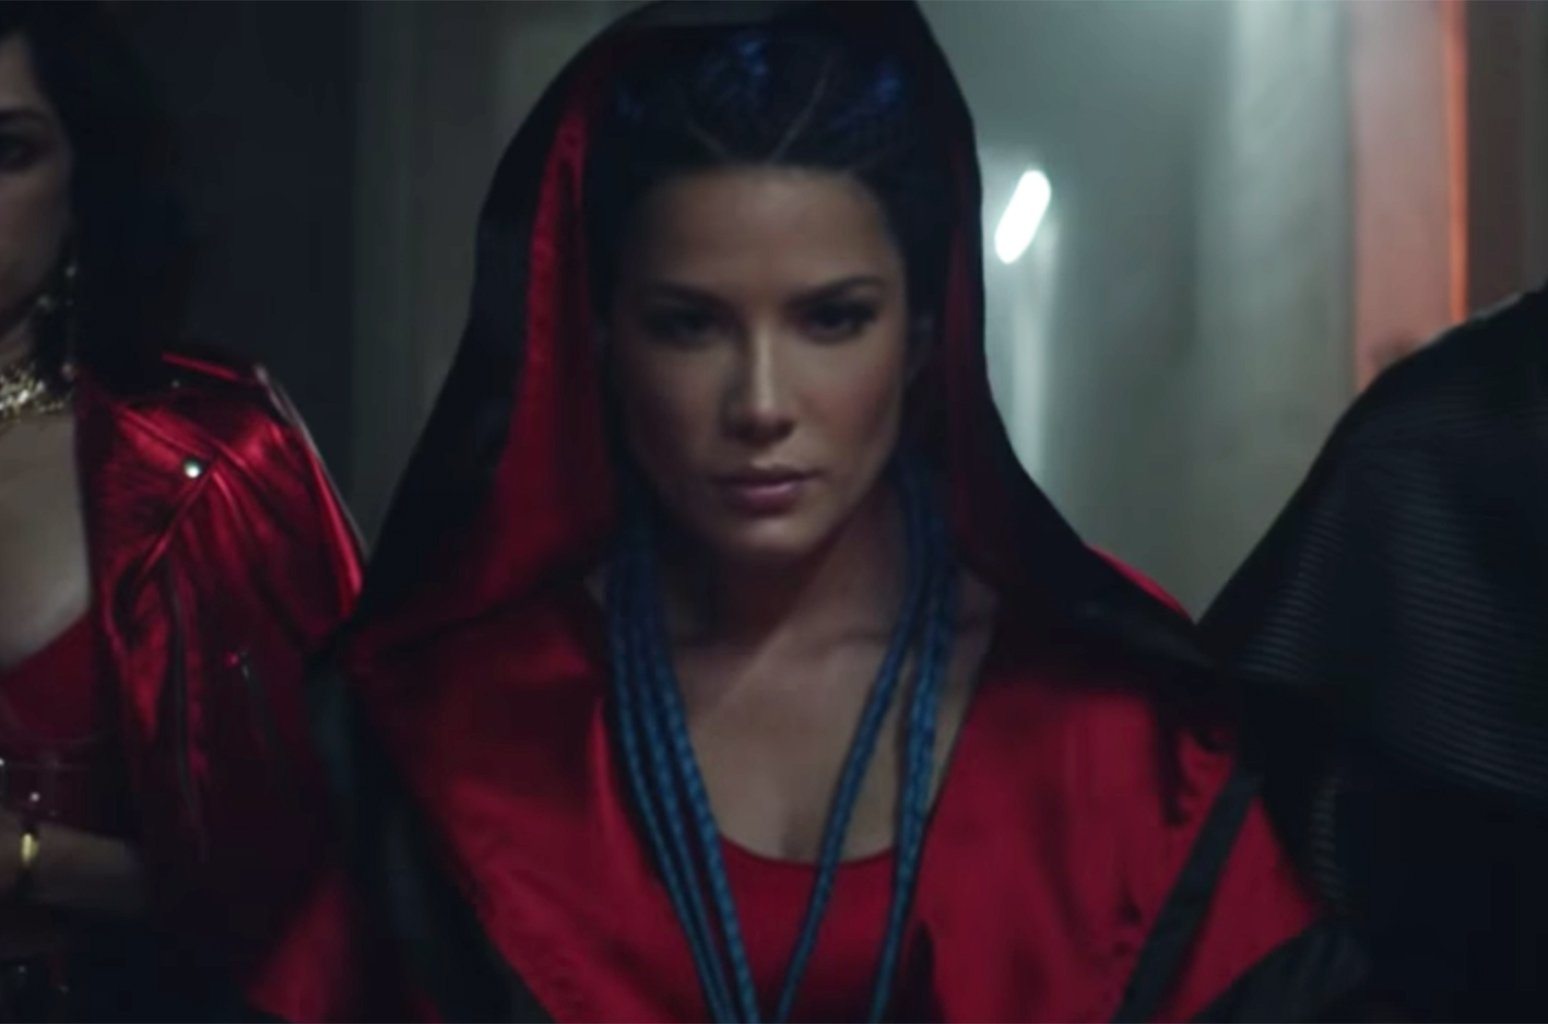 .@Halsey fights for love with @LaurenJauregui in tense 'Strangers' video https://t.co/PyNcisnQn6 https://t.co/pEVTdbjuDM